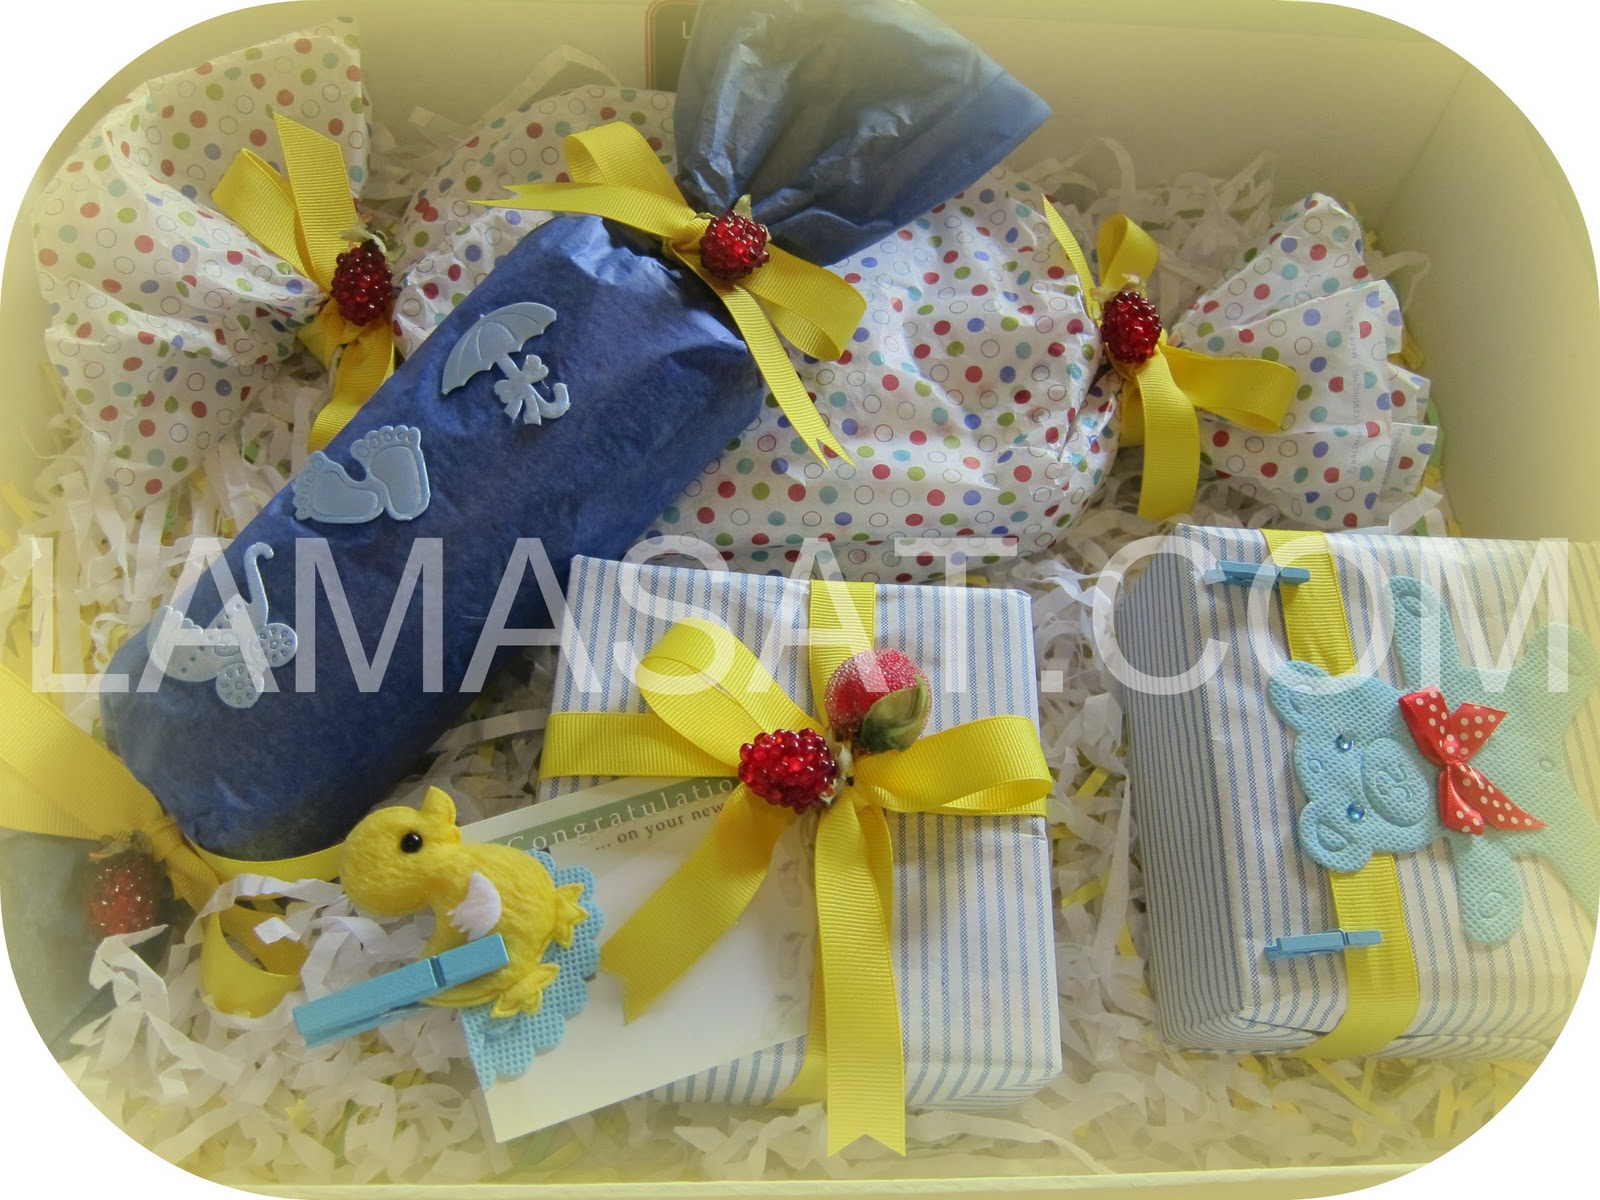 Baby Boy Gifts Uae : Lamasat october